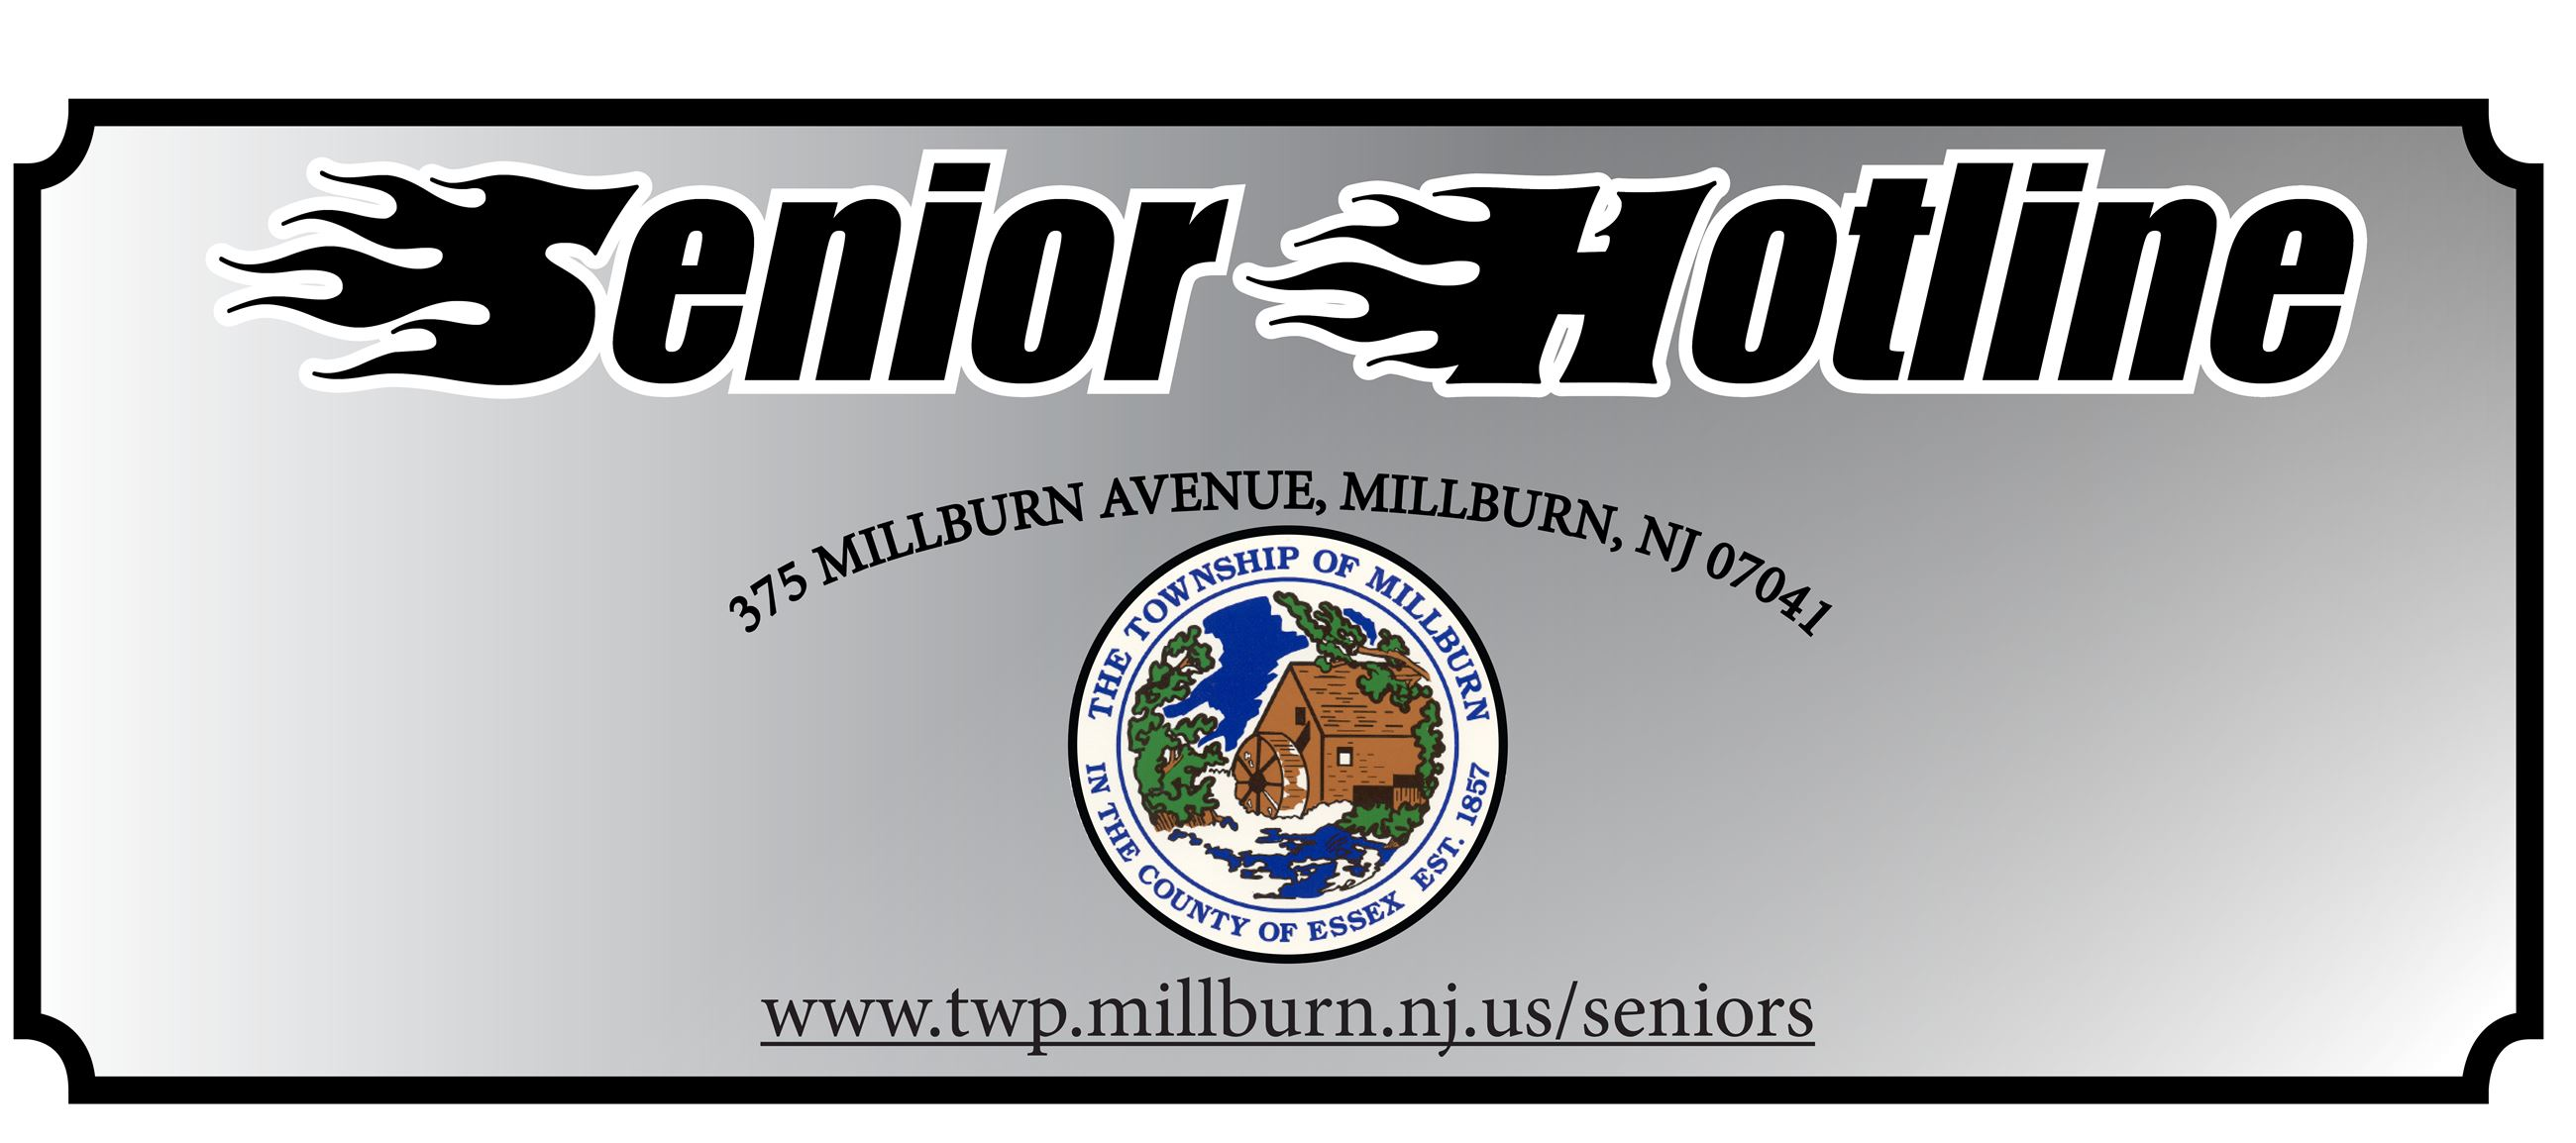 Senior Hotline Newsletter Opens in new window